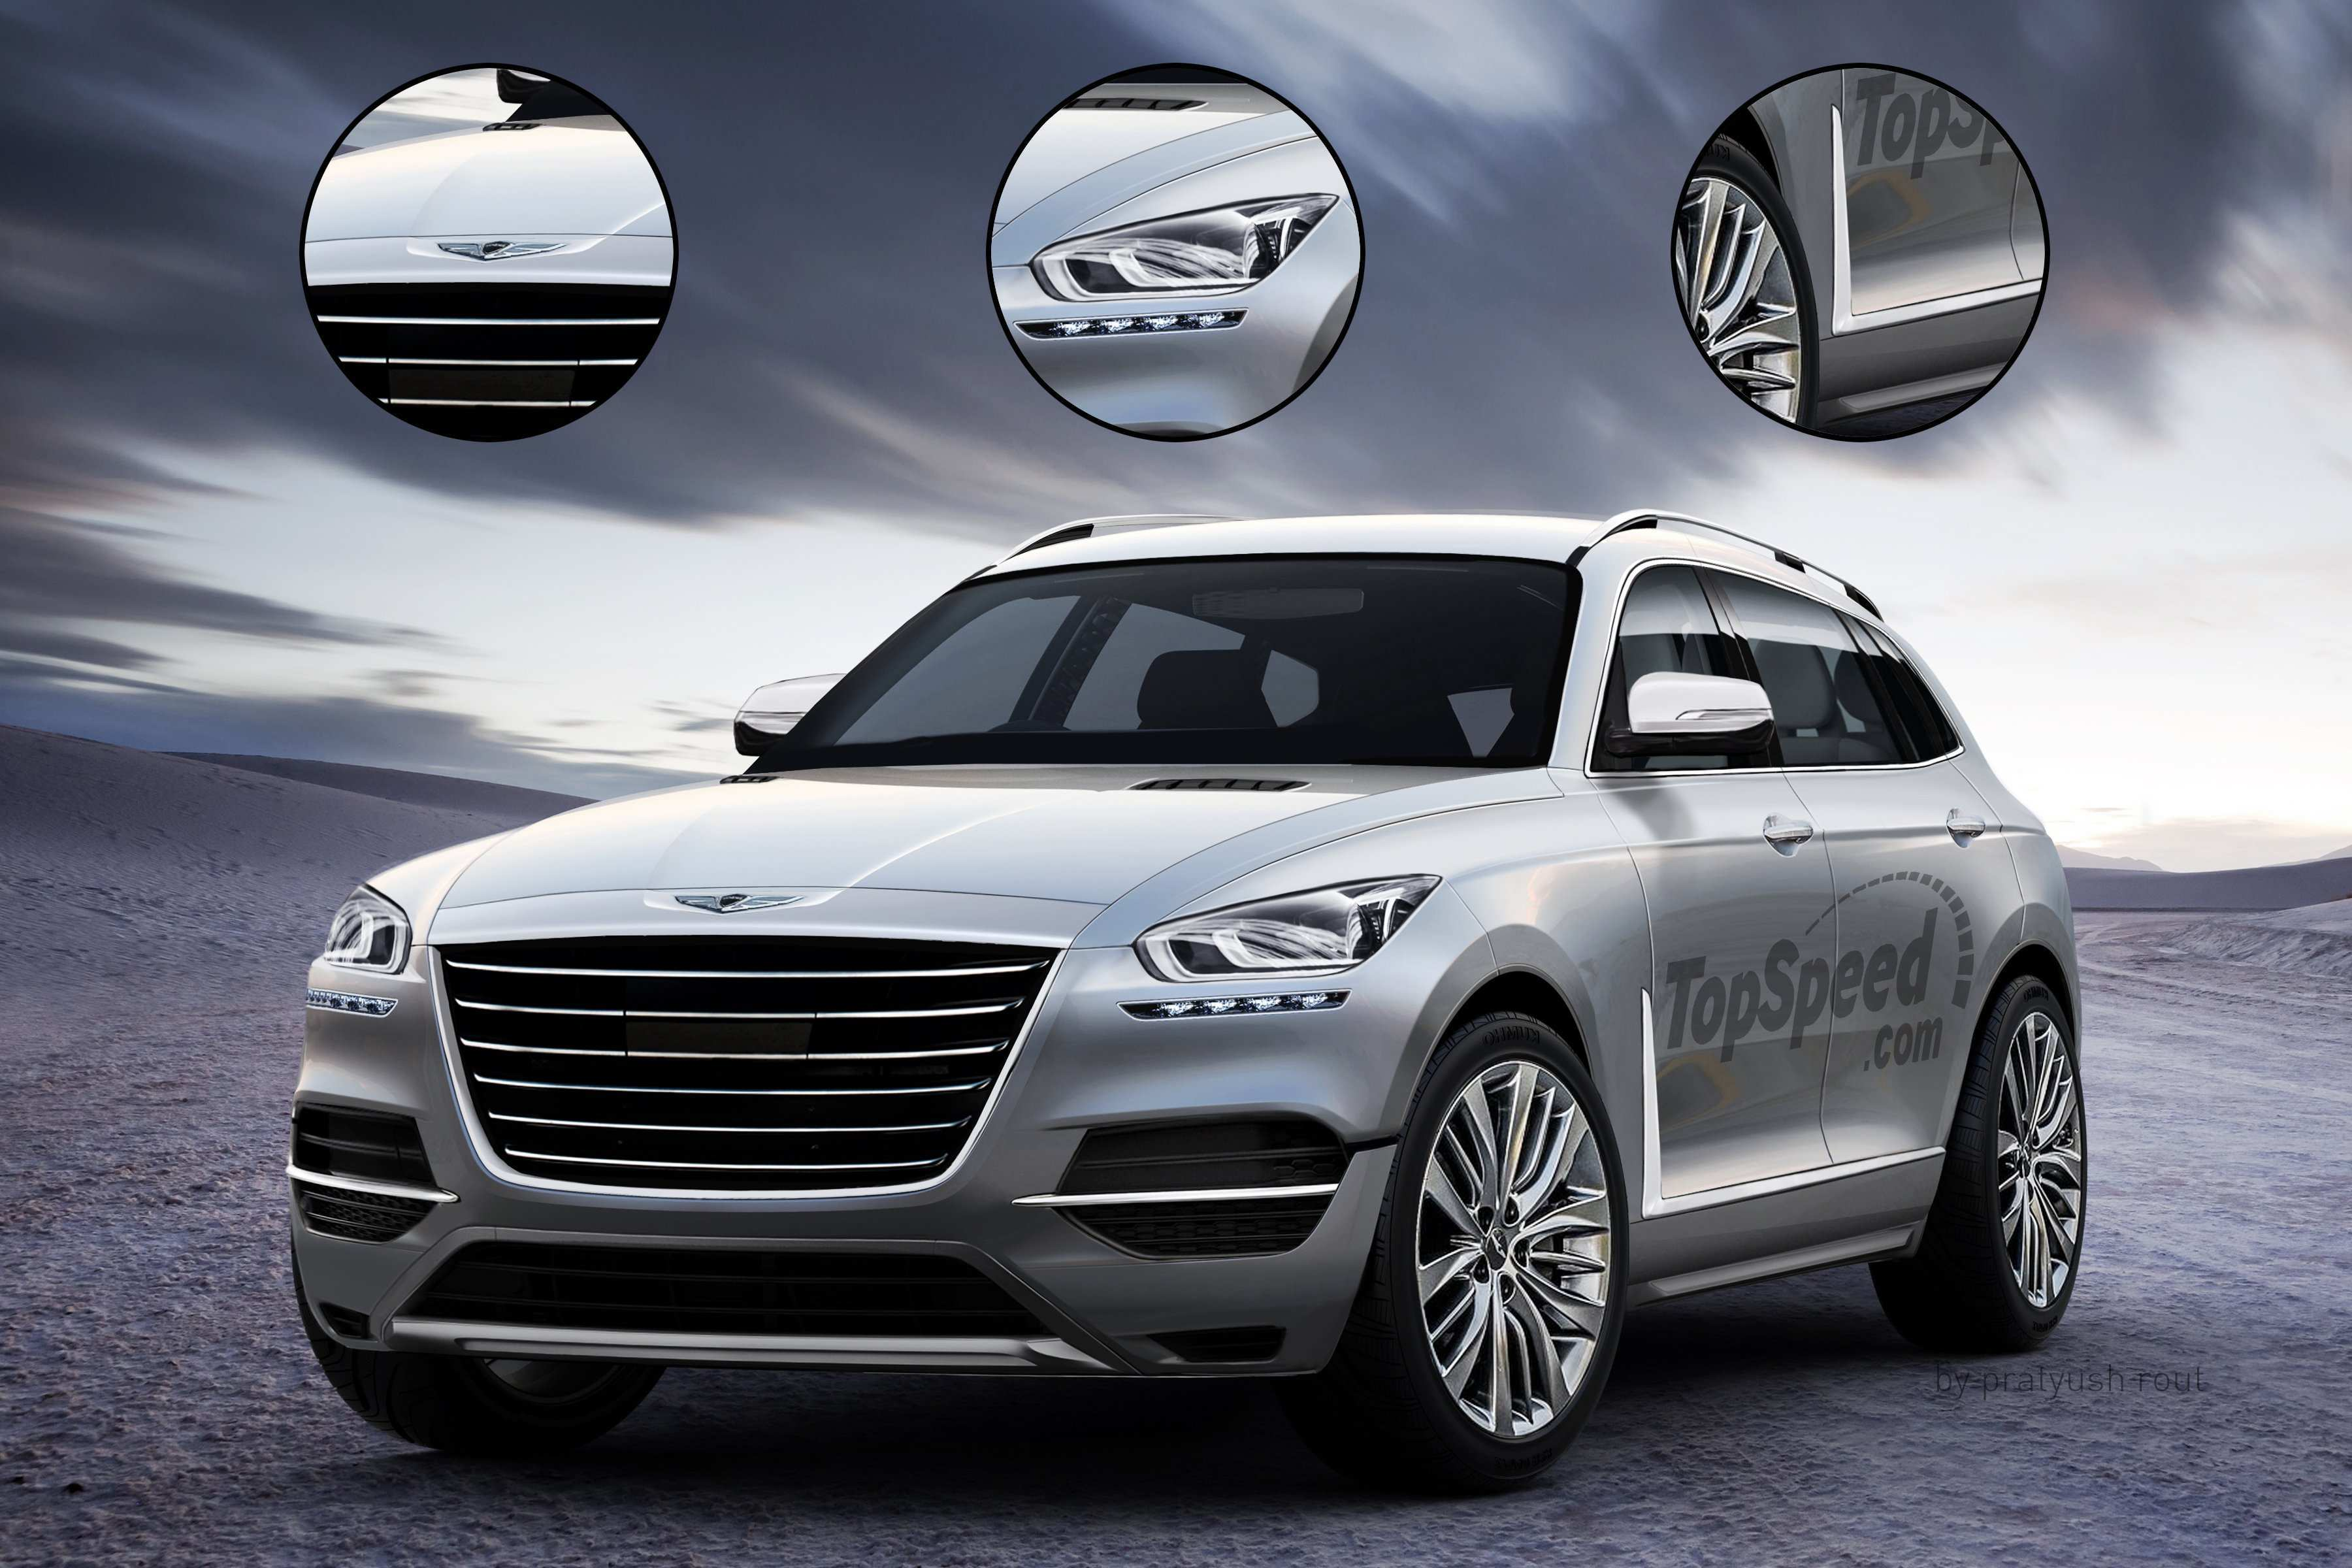 59 The 2020 Hyundai Genesis Suv Specs And Review